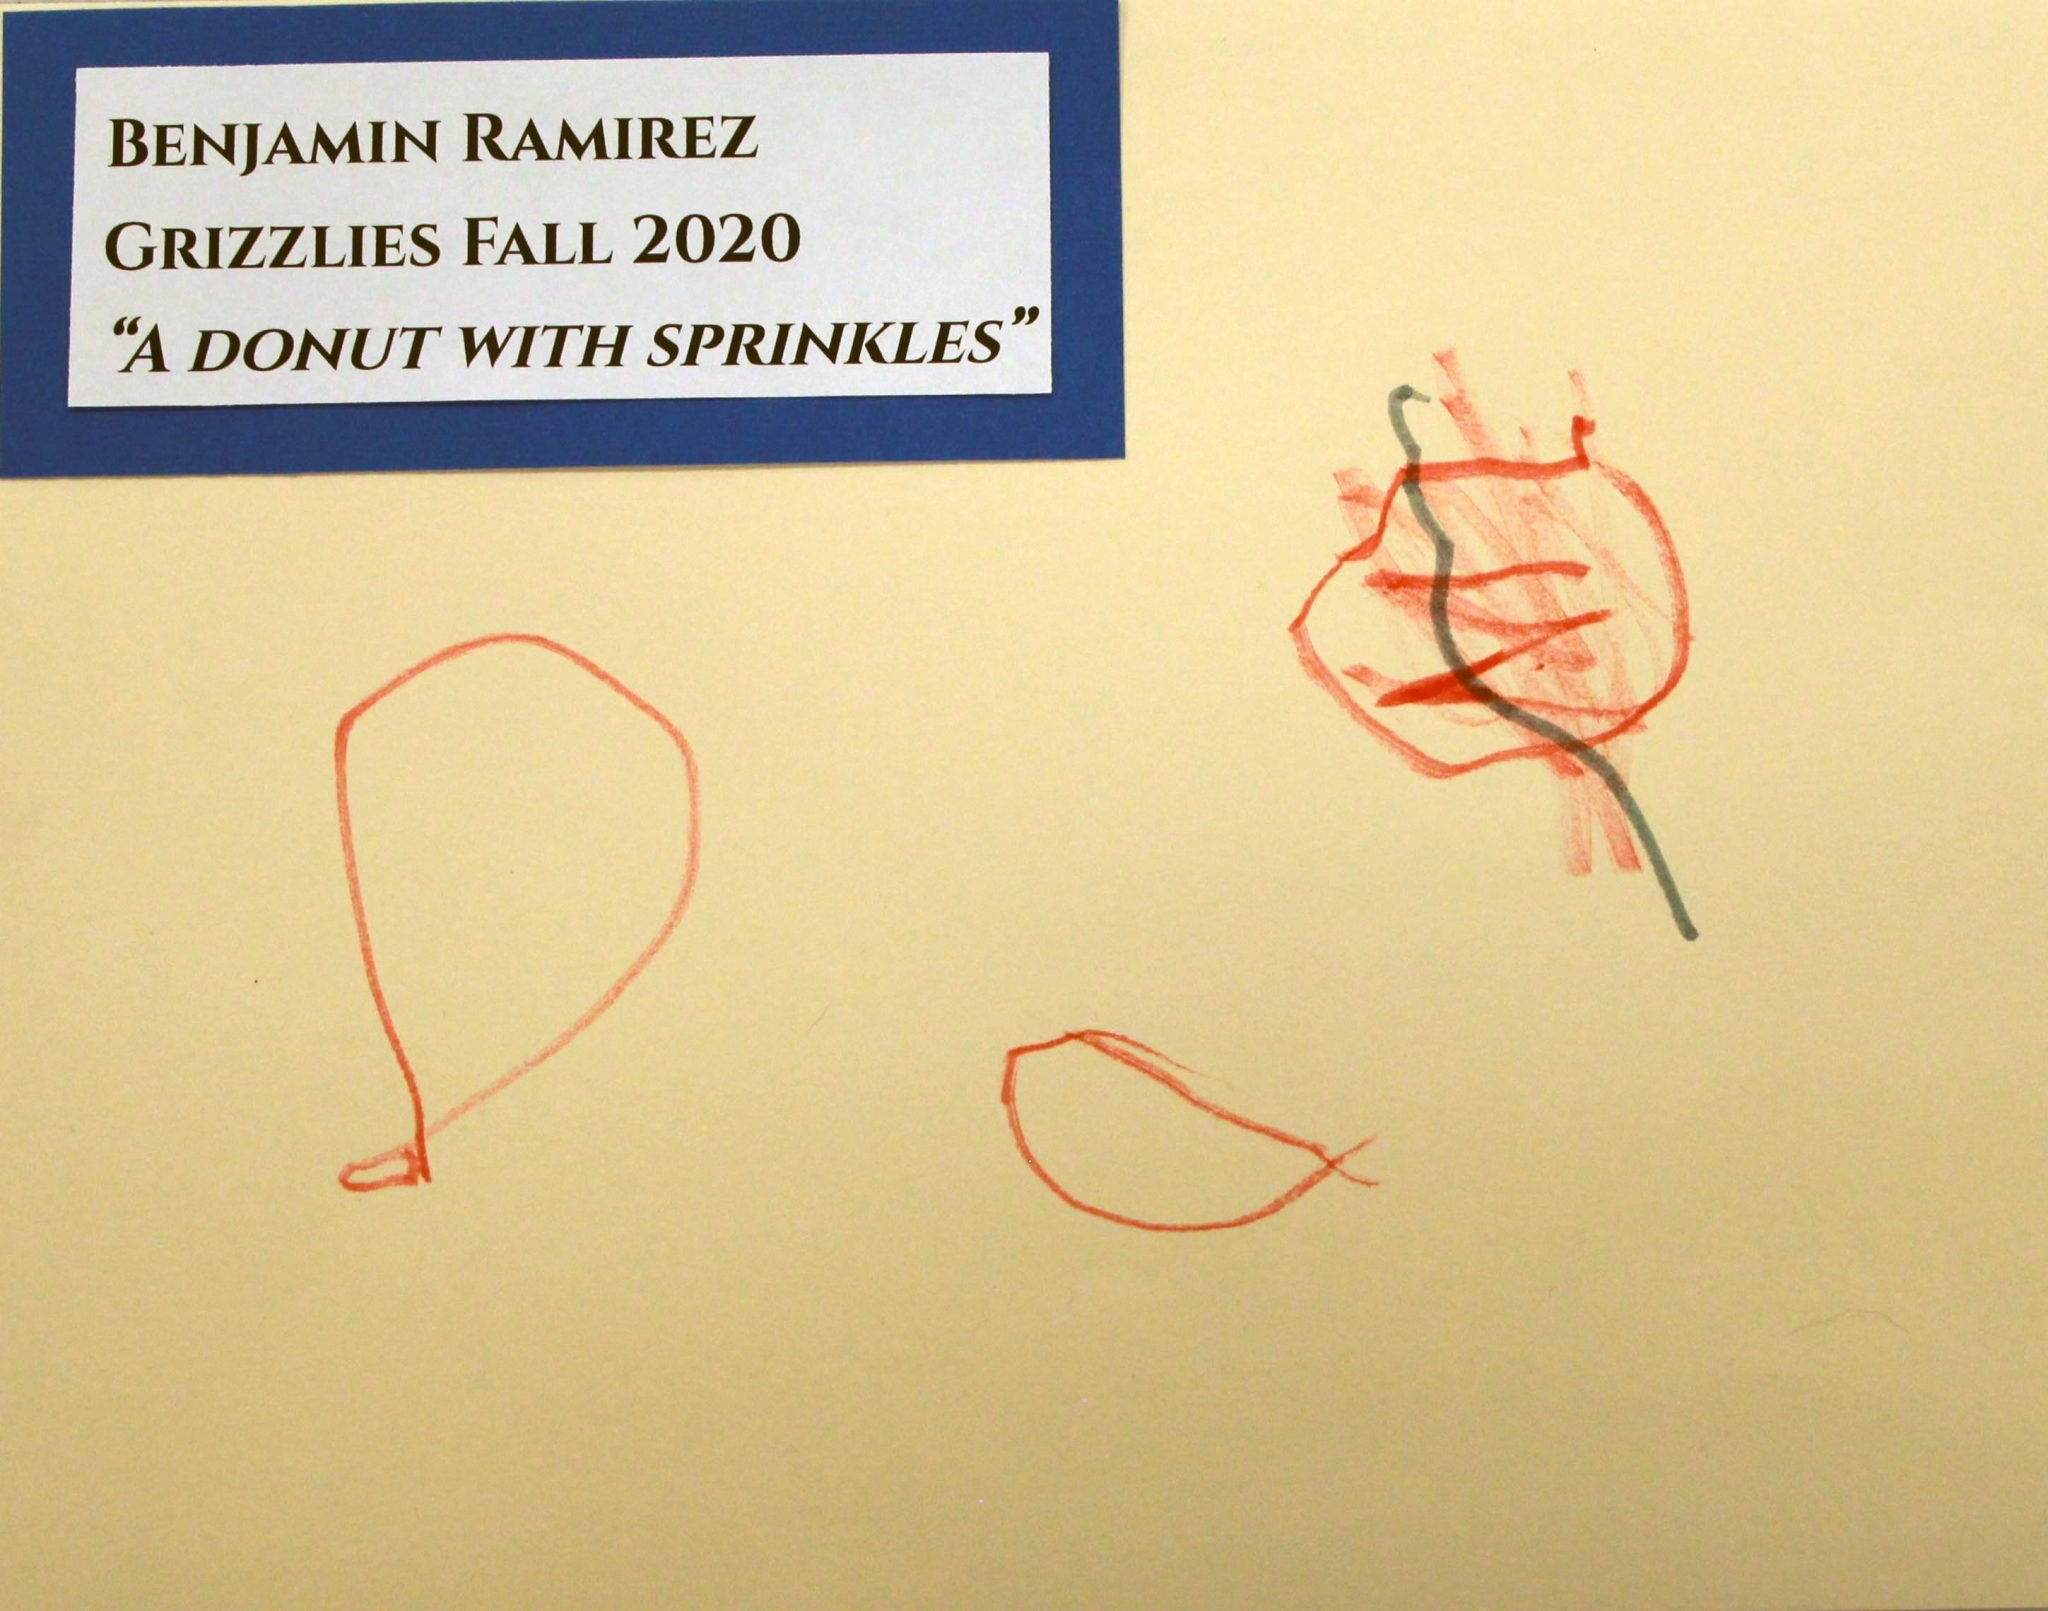 Benjamin Ramirez, of Grizzlies group, drawing, Fall 2020